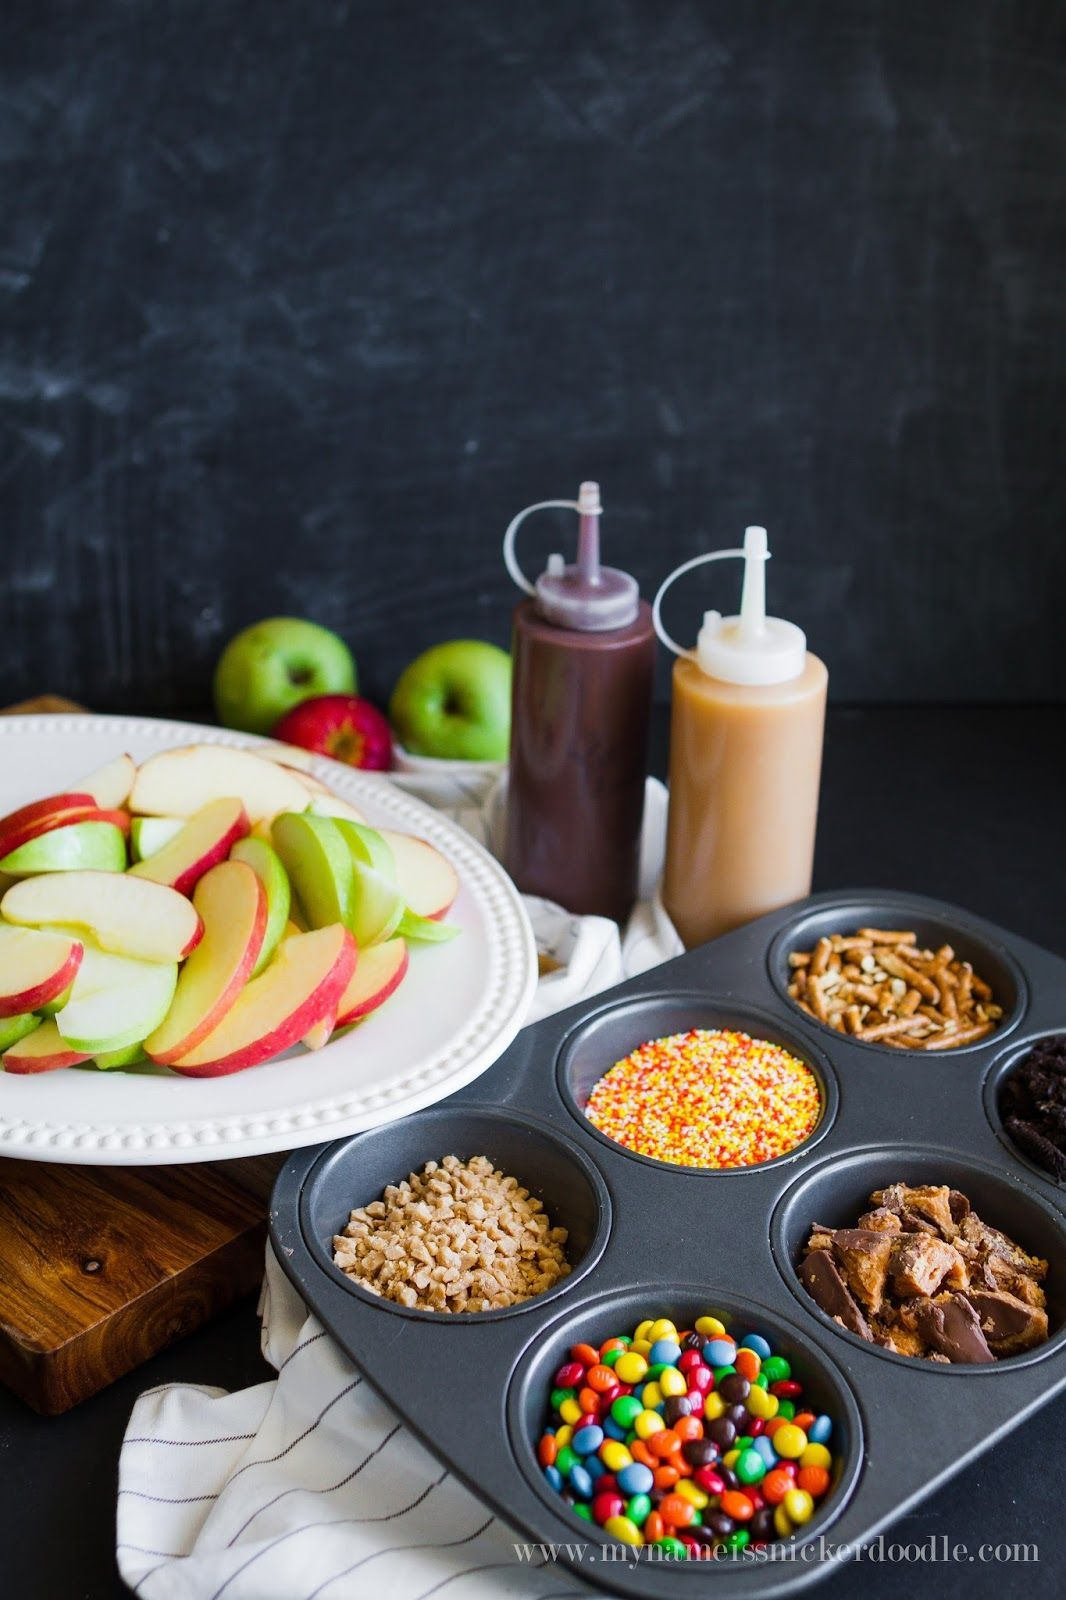 Caramel Apple Nacho Bar - My Name Is Snickerdoodle